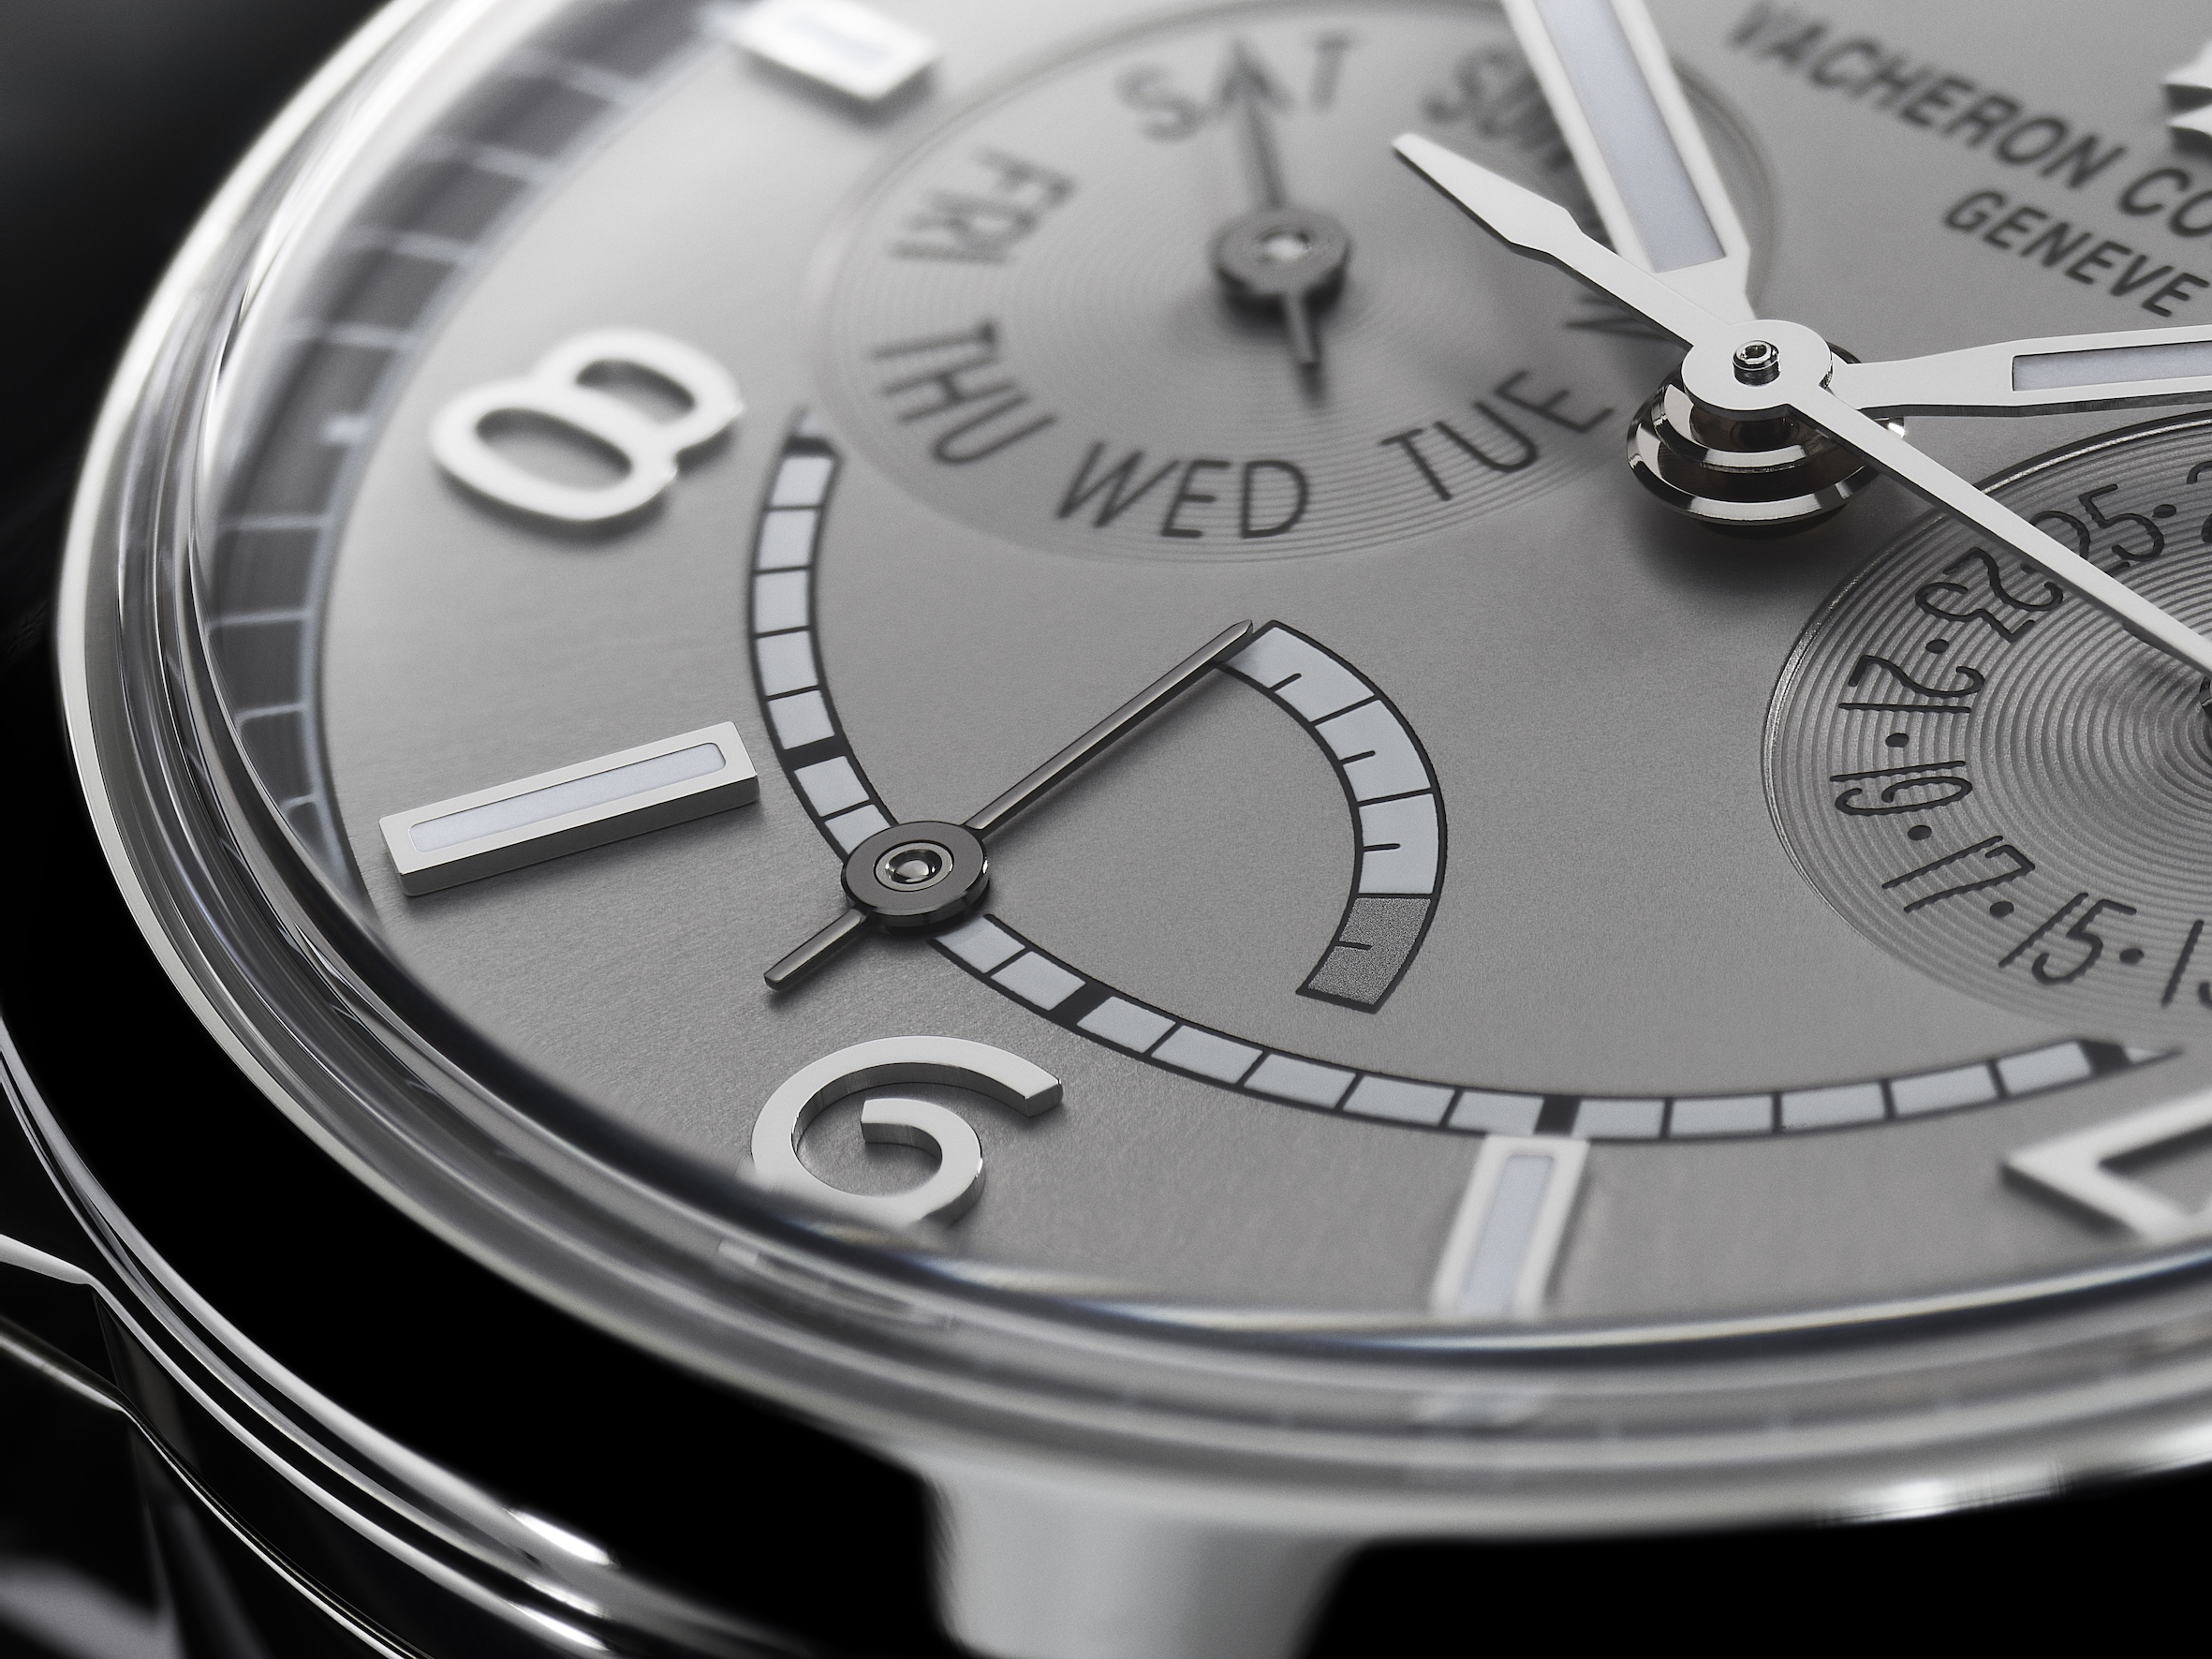 Vacheron Constantin FIFTYSIX day-date with power-reserve indicator. Power-reserve display at 6 o'clock